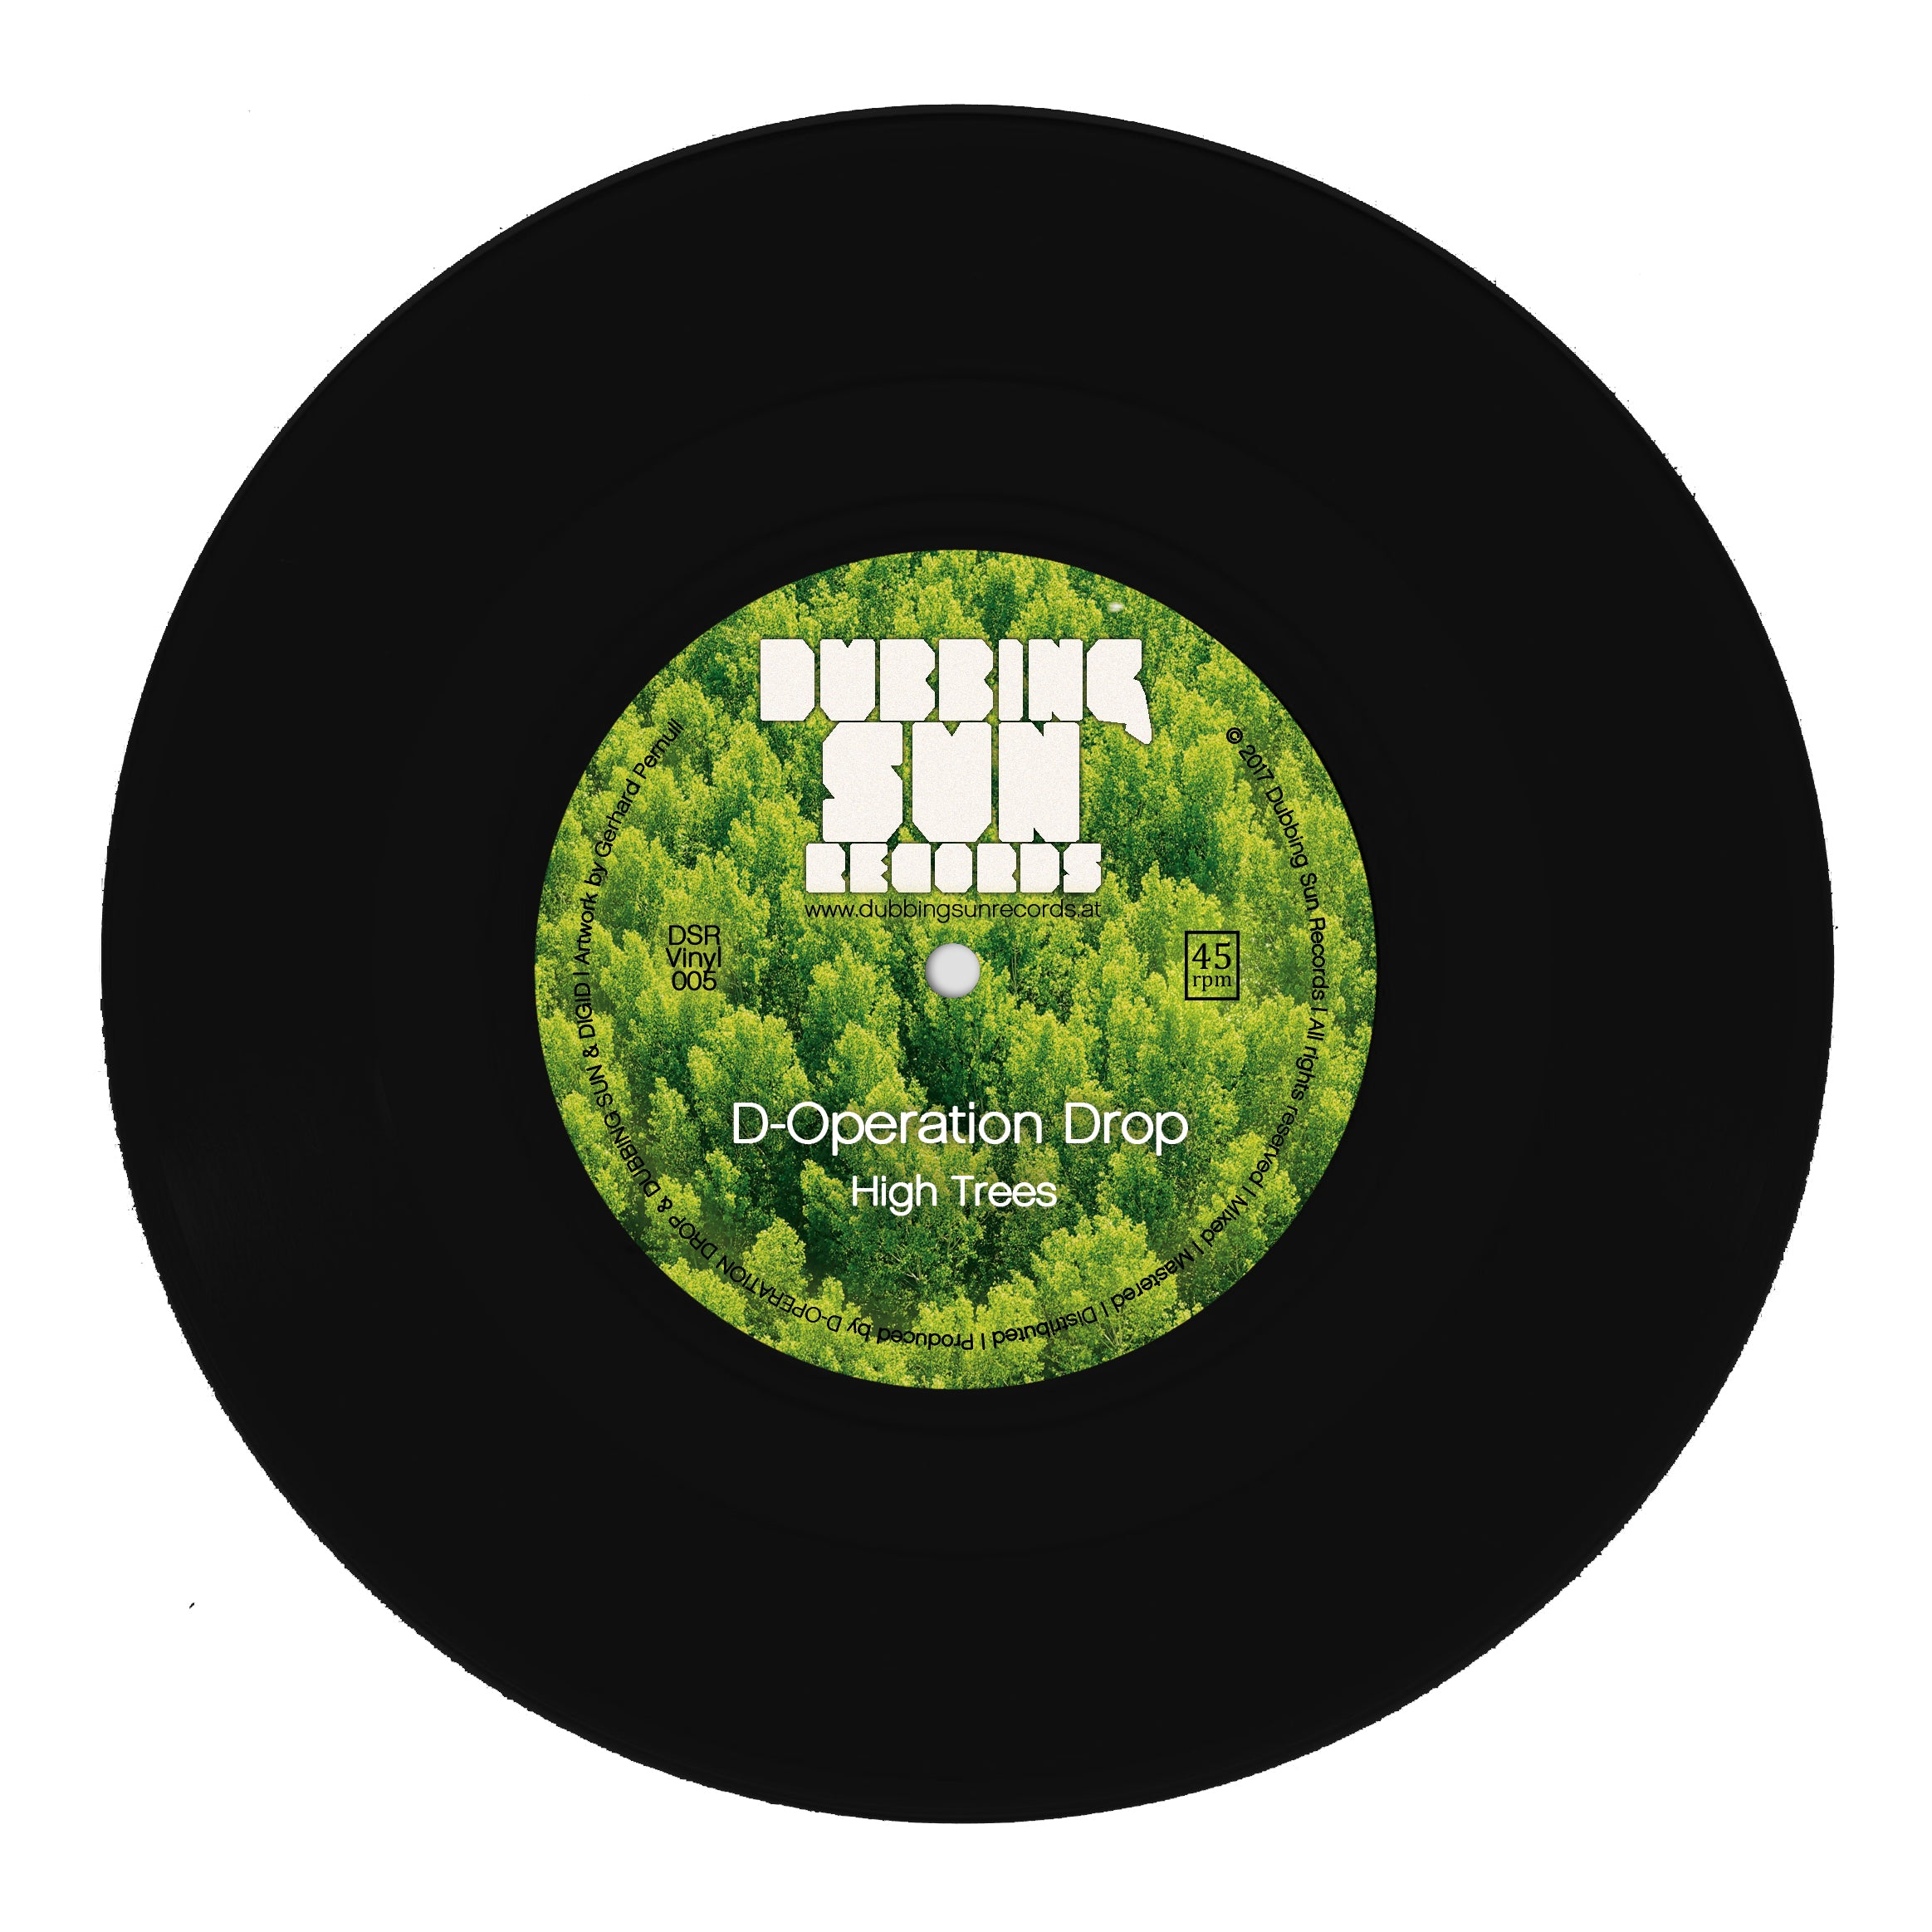 "D-Operation Drop - High Trees [7"" Vinyl]"